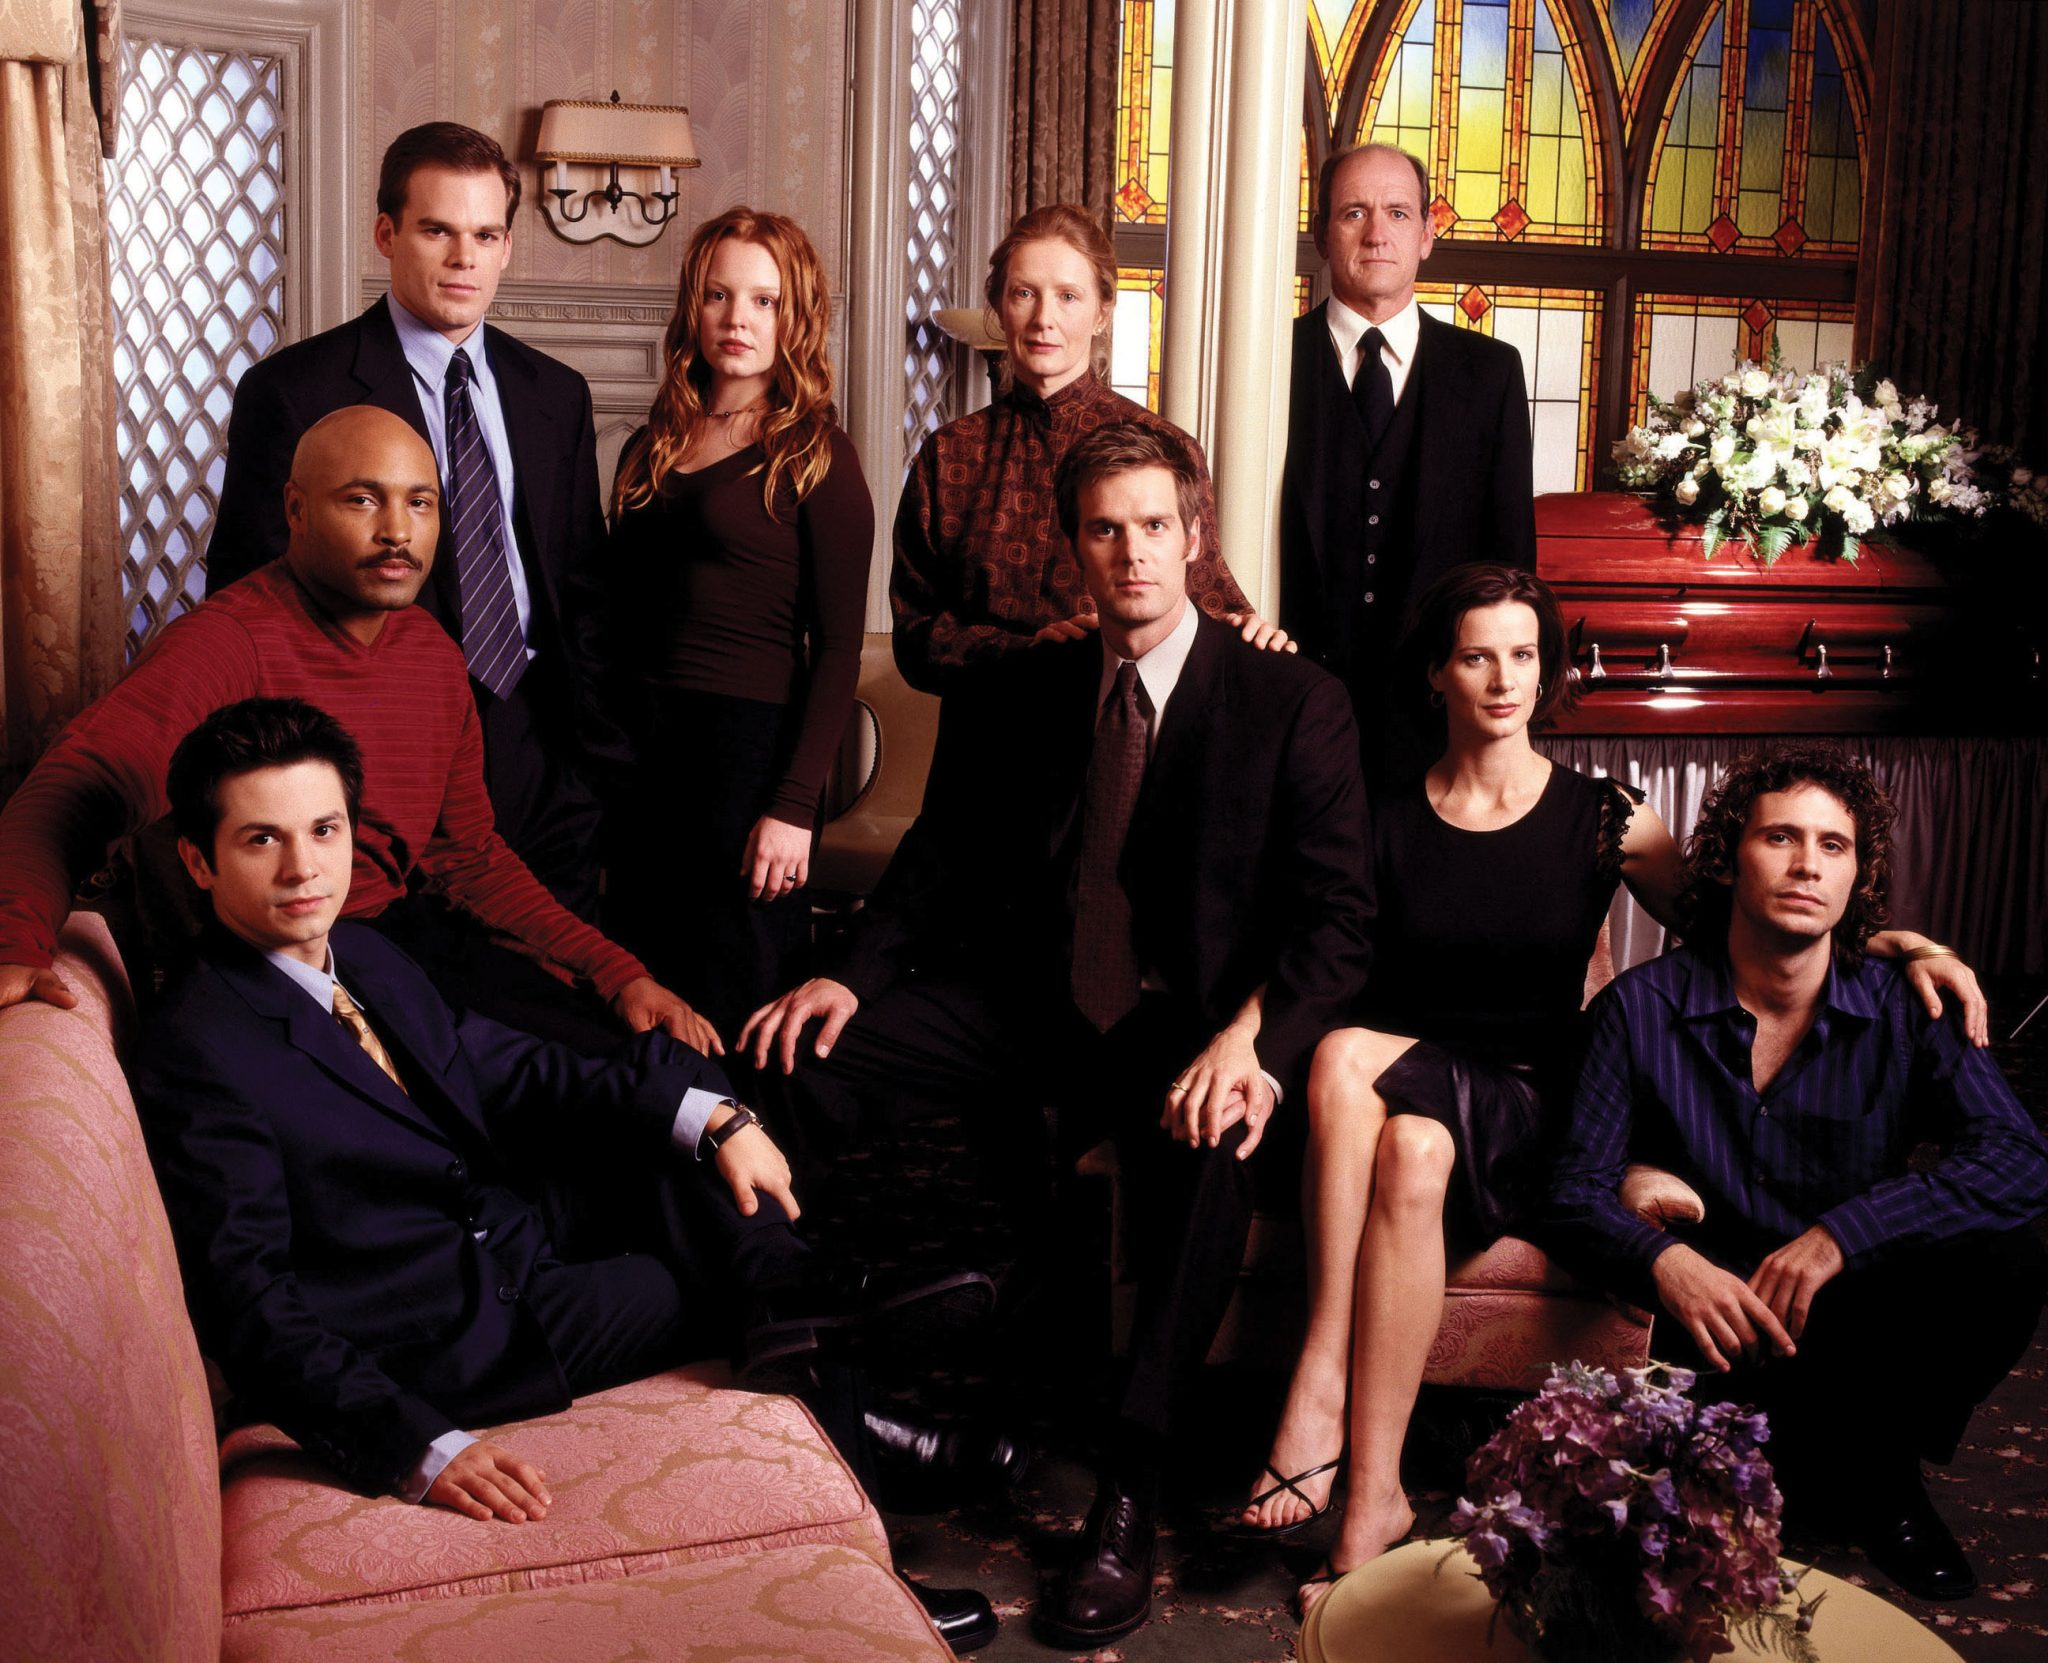 A Decade of Life and Death - The 5 Most Powerful Moments From Six Feet Under